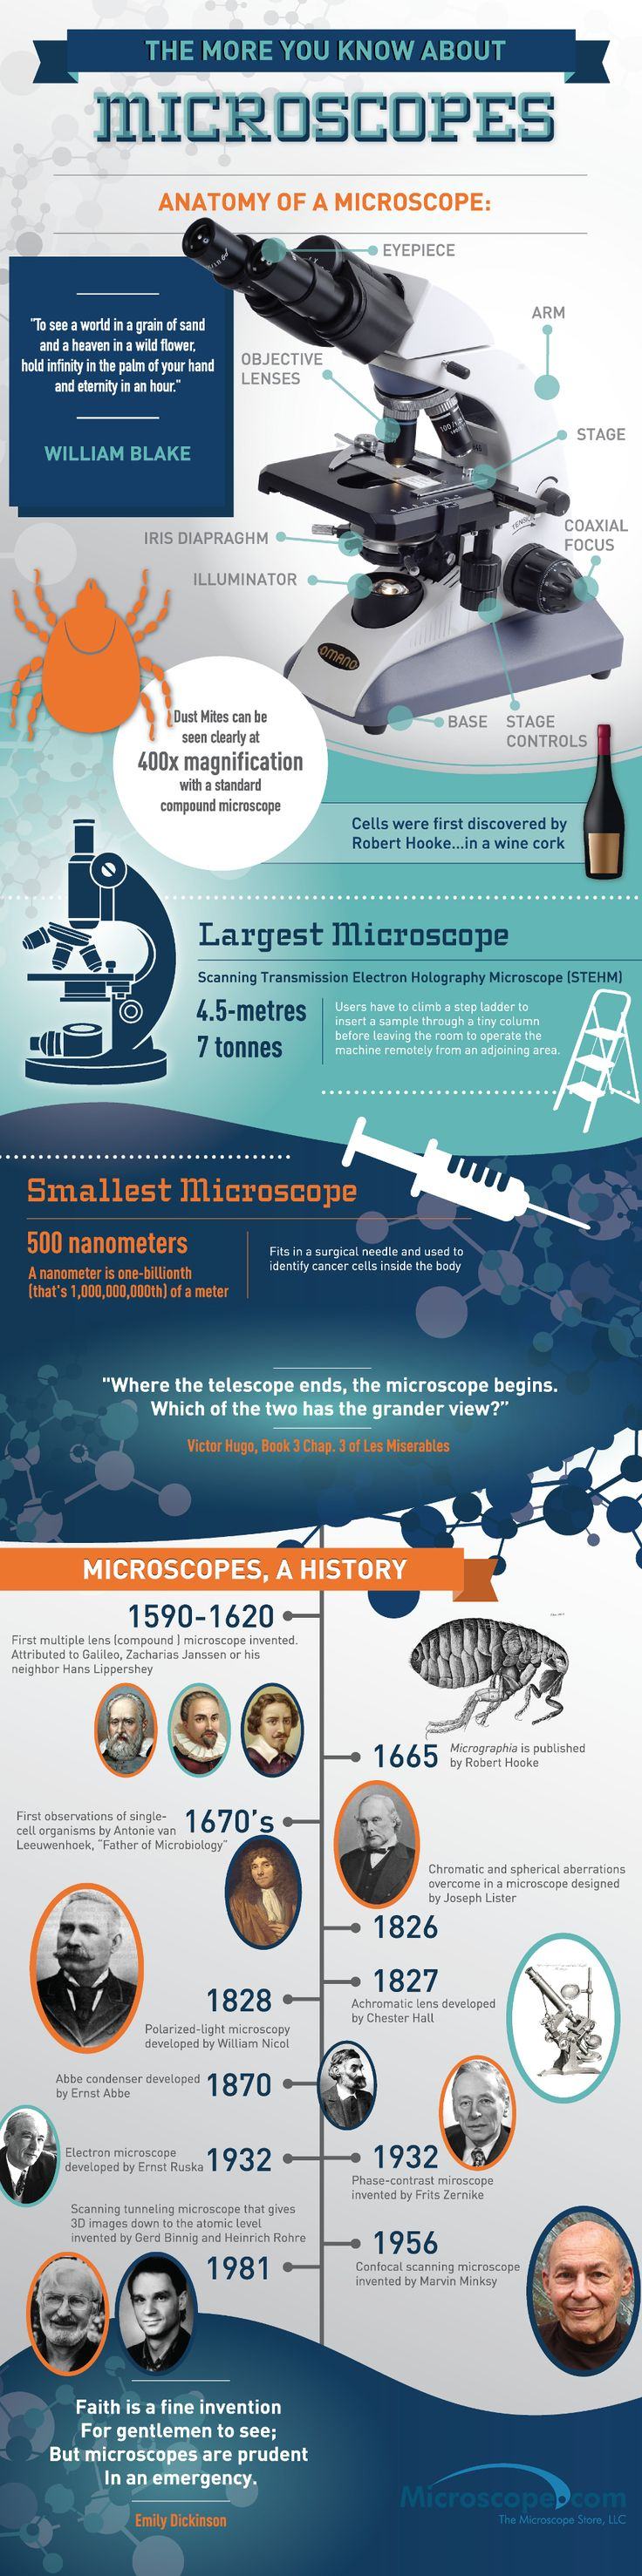 The More You Know About Microscopes #infographic, not much as changed until now.